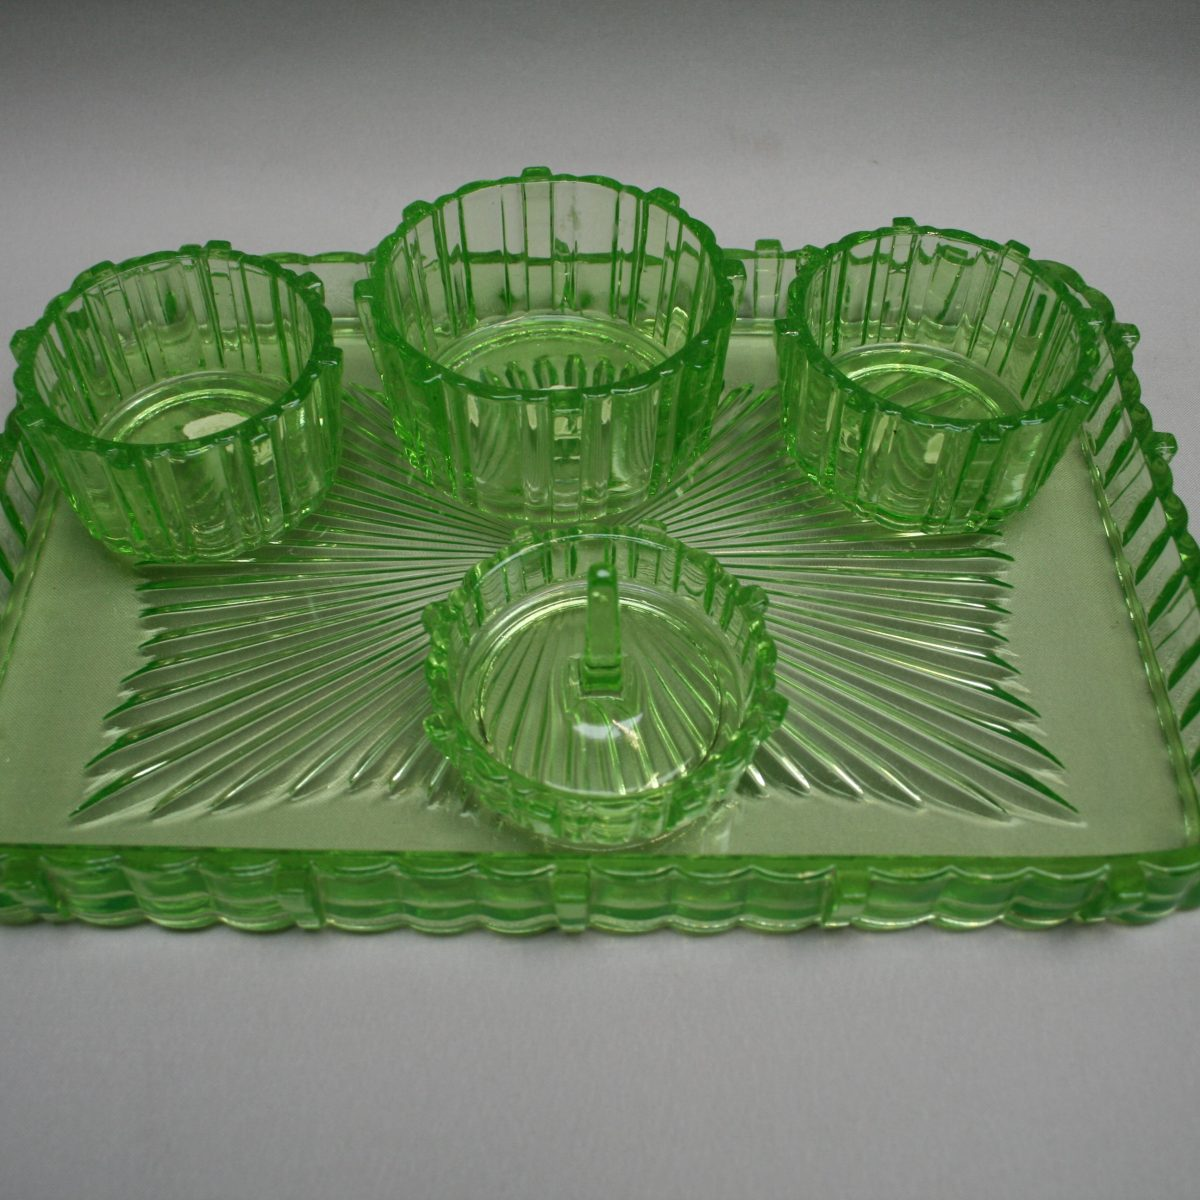 green glass dressing table set/williamsantiques